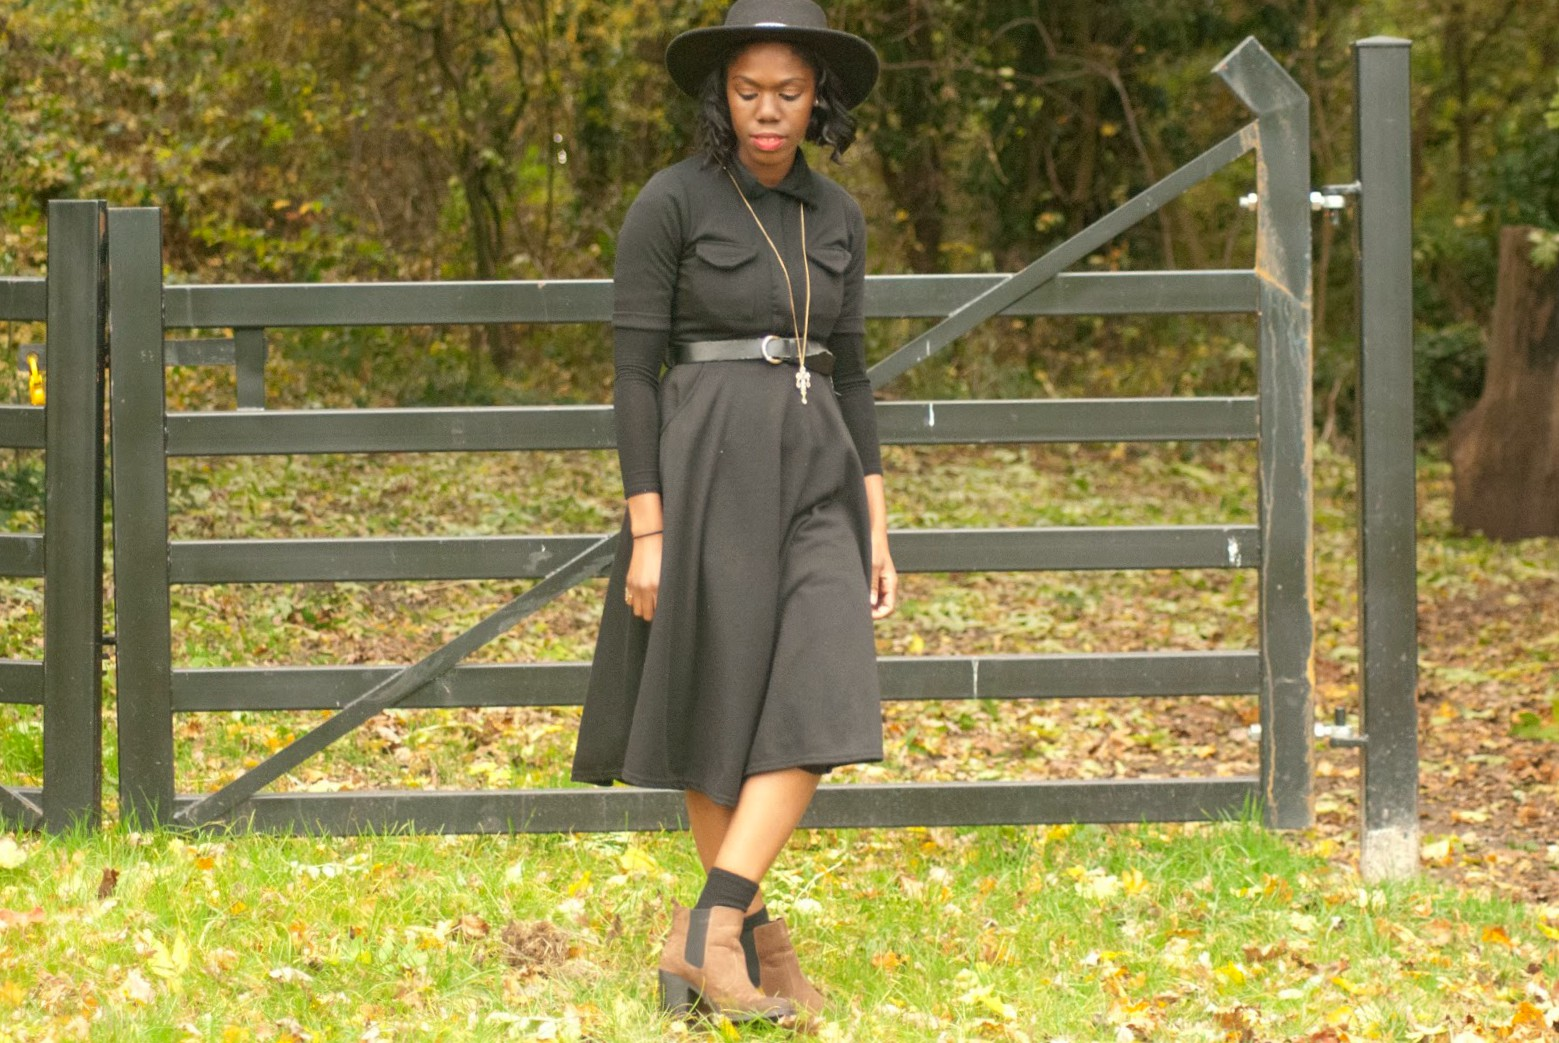 Boohoo black midi dress, fryent country park, fashion blogger, 100 Ways to 30, Style & Fashion